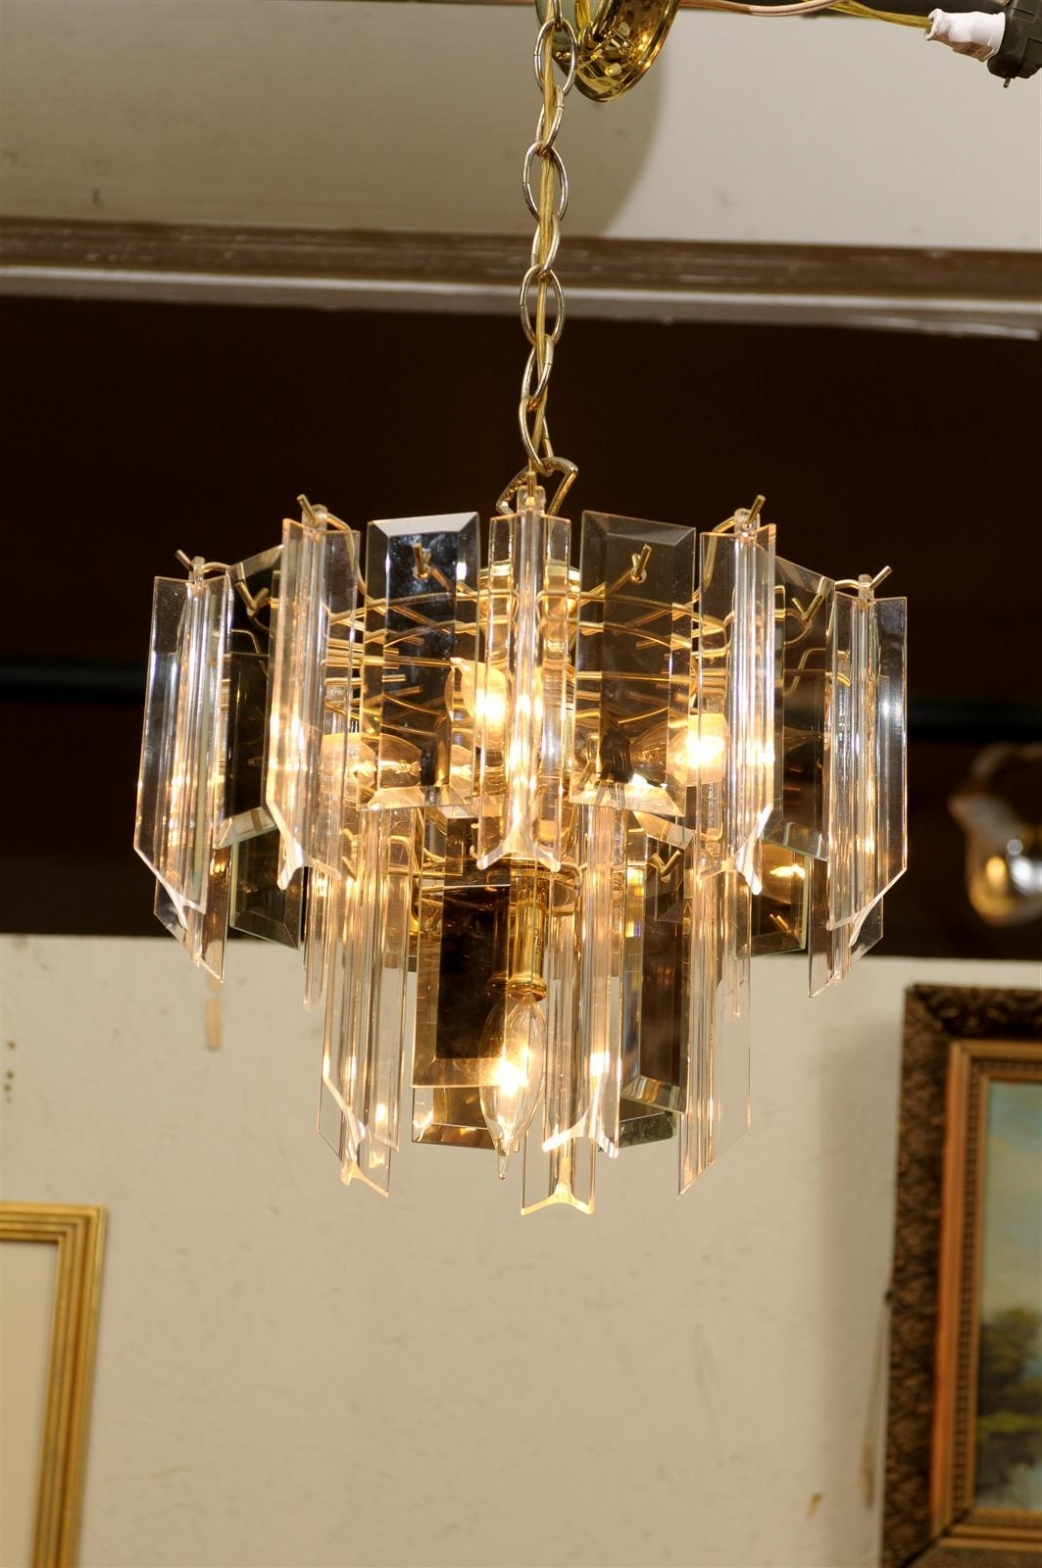 Widely Used Brass Beveled Glass Chandelier – Chandelier Designs With Regard To Smoked Glass Chandelier (View 15 of 15)